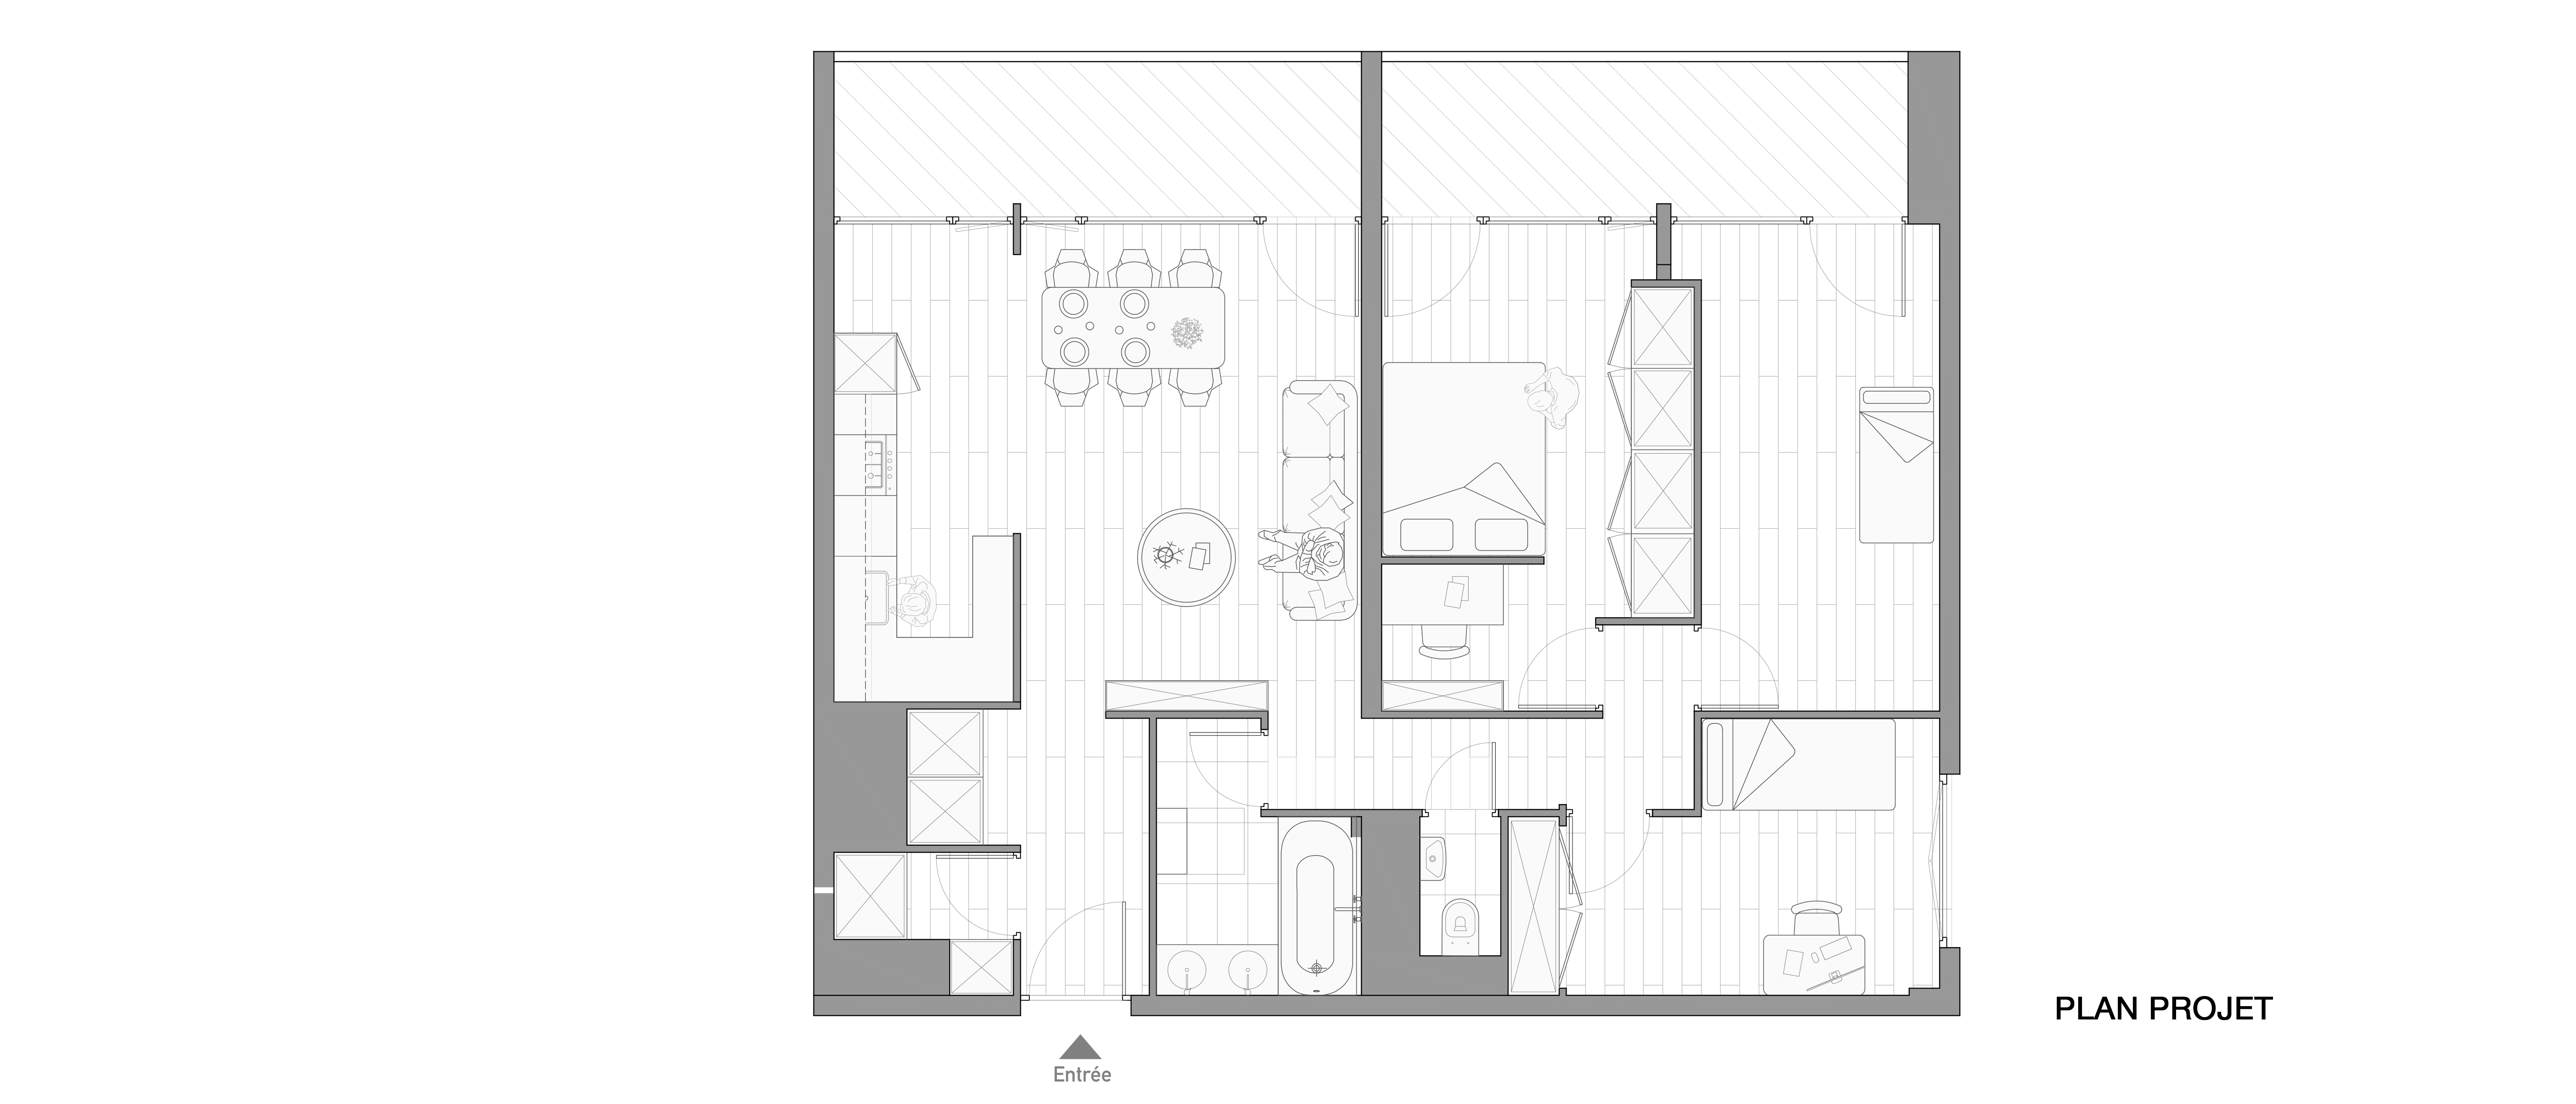 atelier-steve-appartement-mariniers-renovation-architecture-interieure-paris-plan-projet